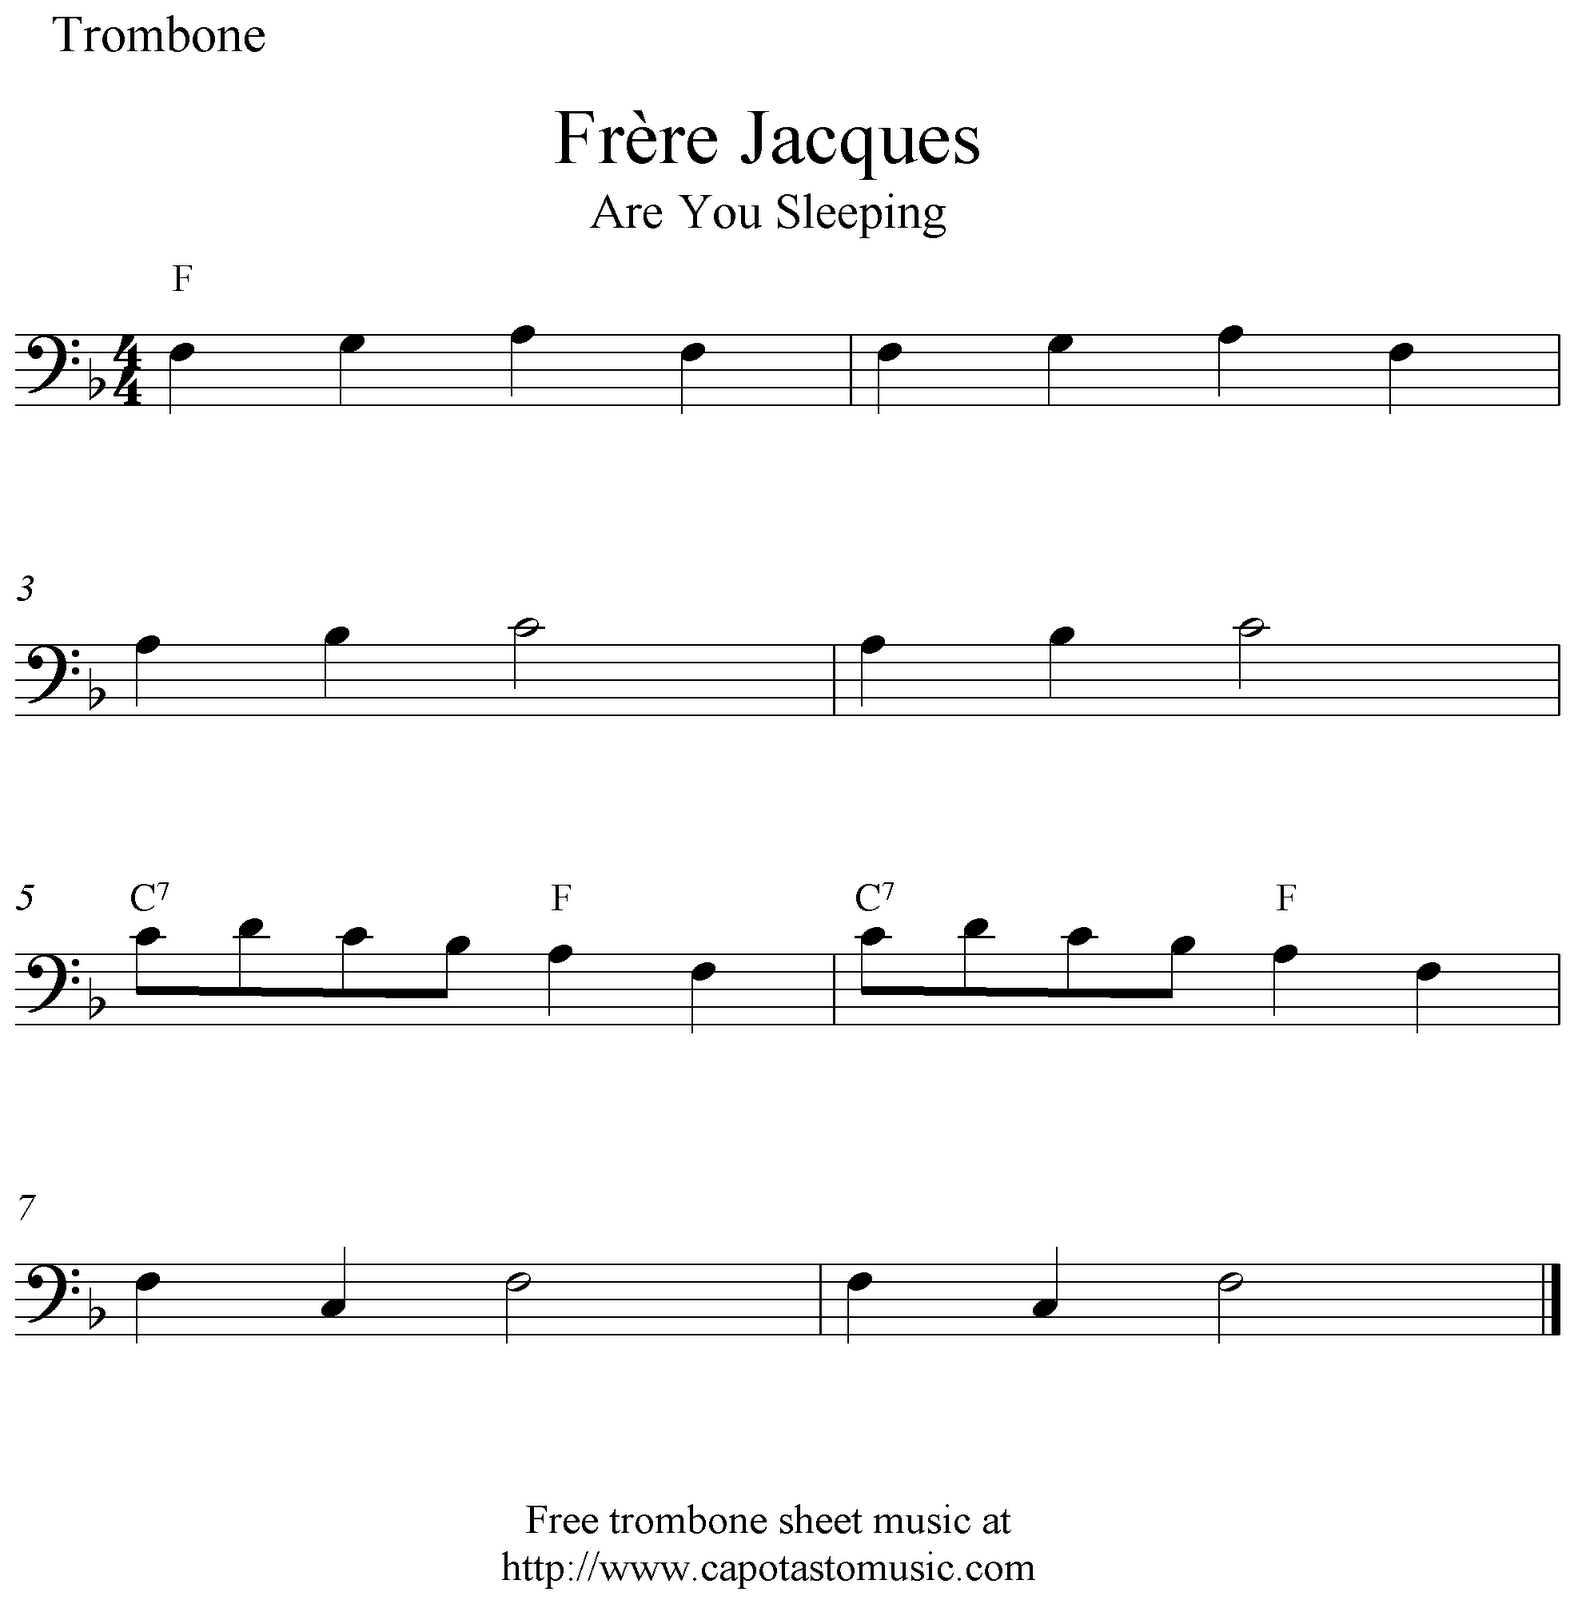 photograph relating to Free Printable Trombone Sheet Music called Frère Jacques (Are Oneself Sleeping), absolutely free trombone sheet new music